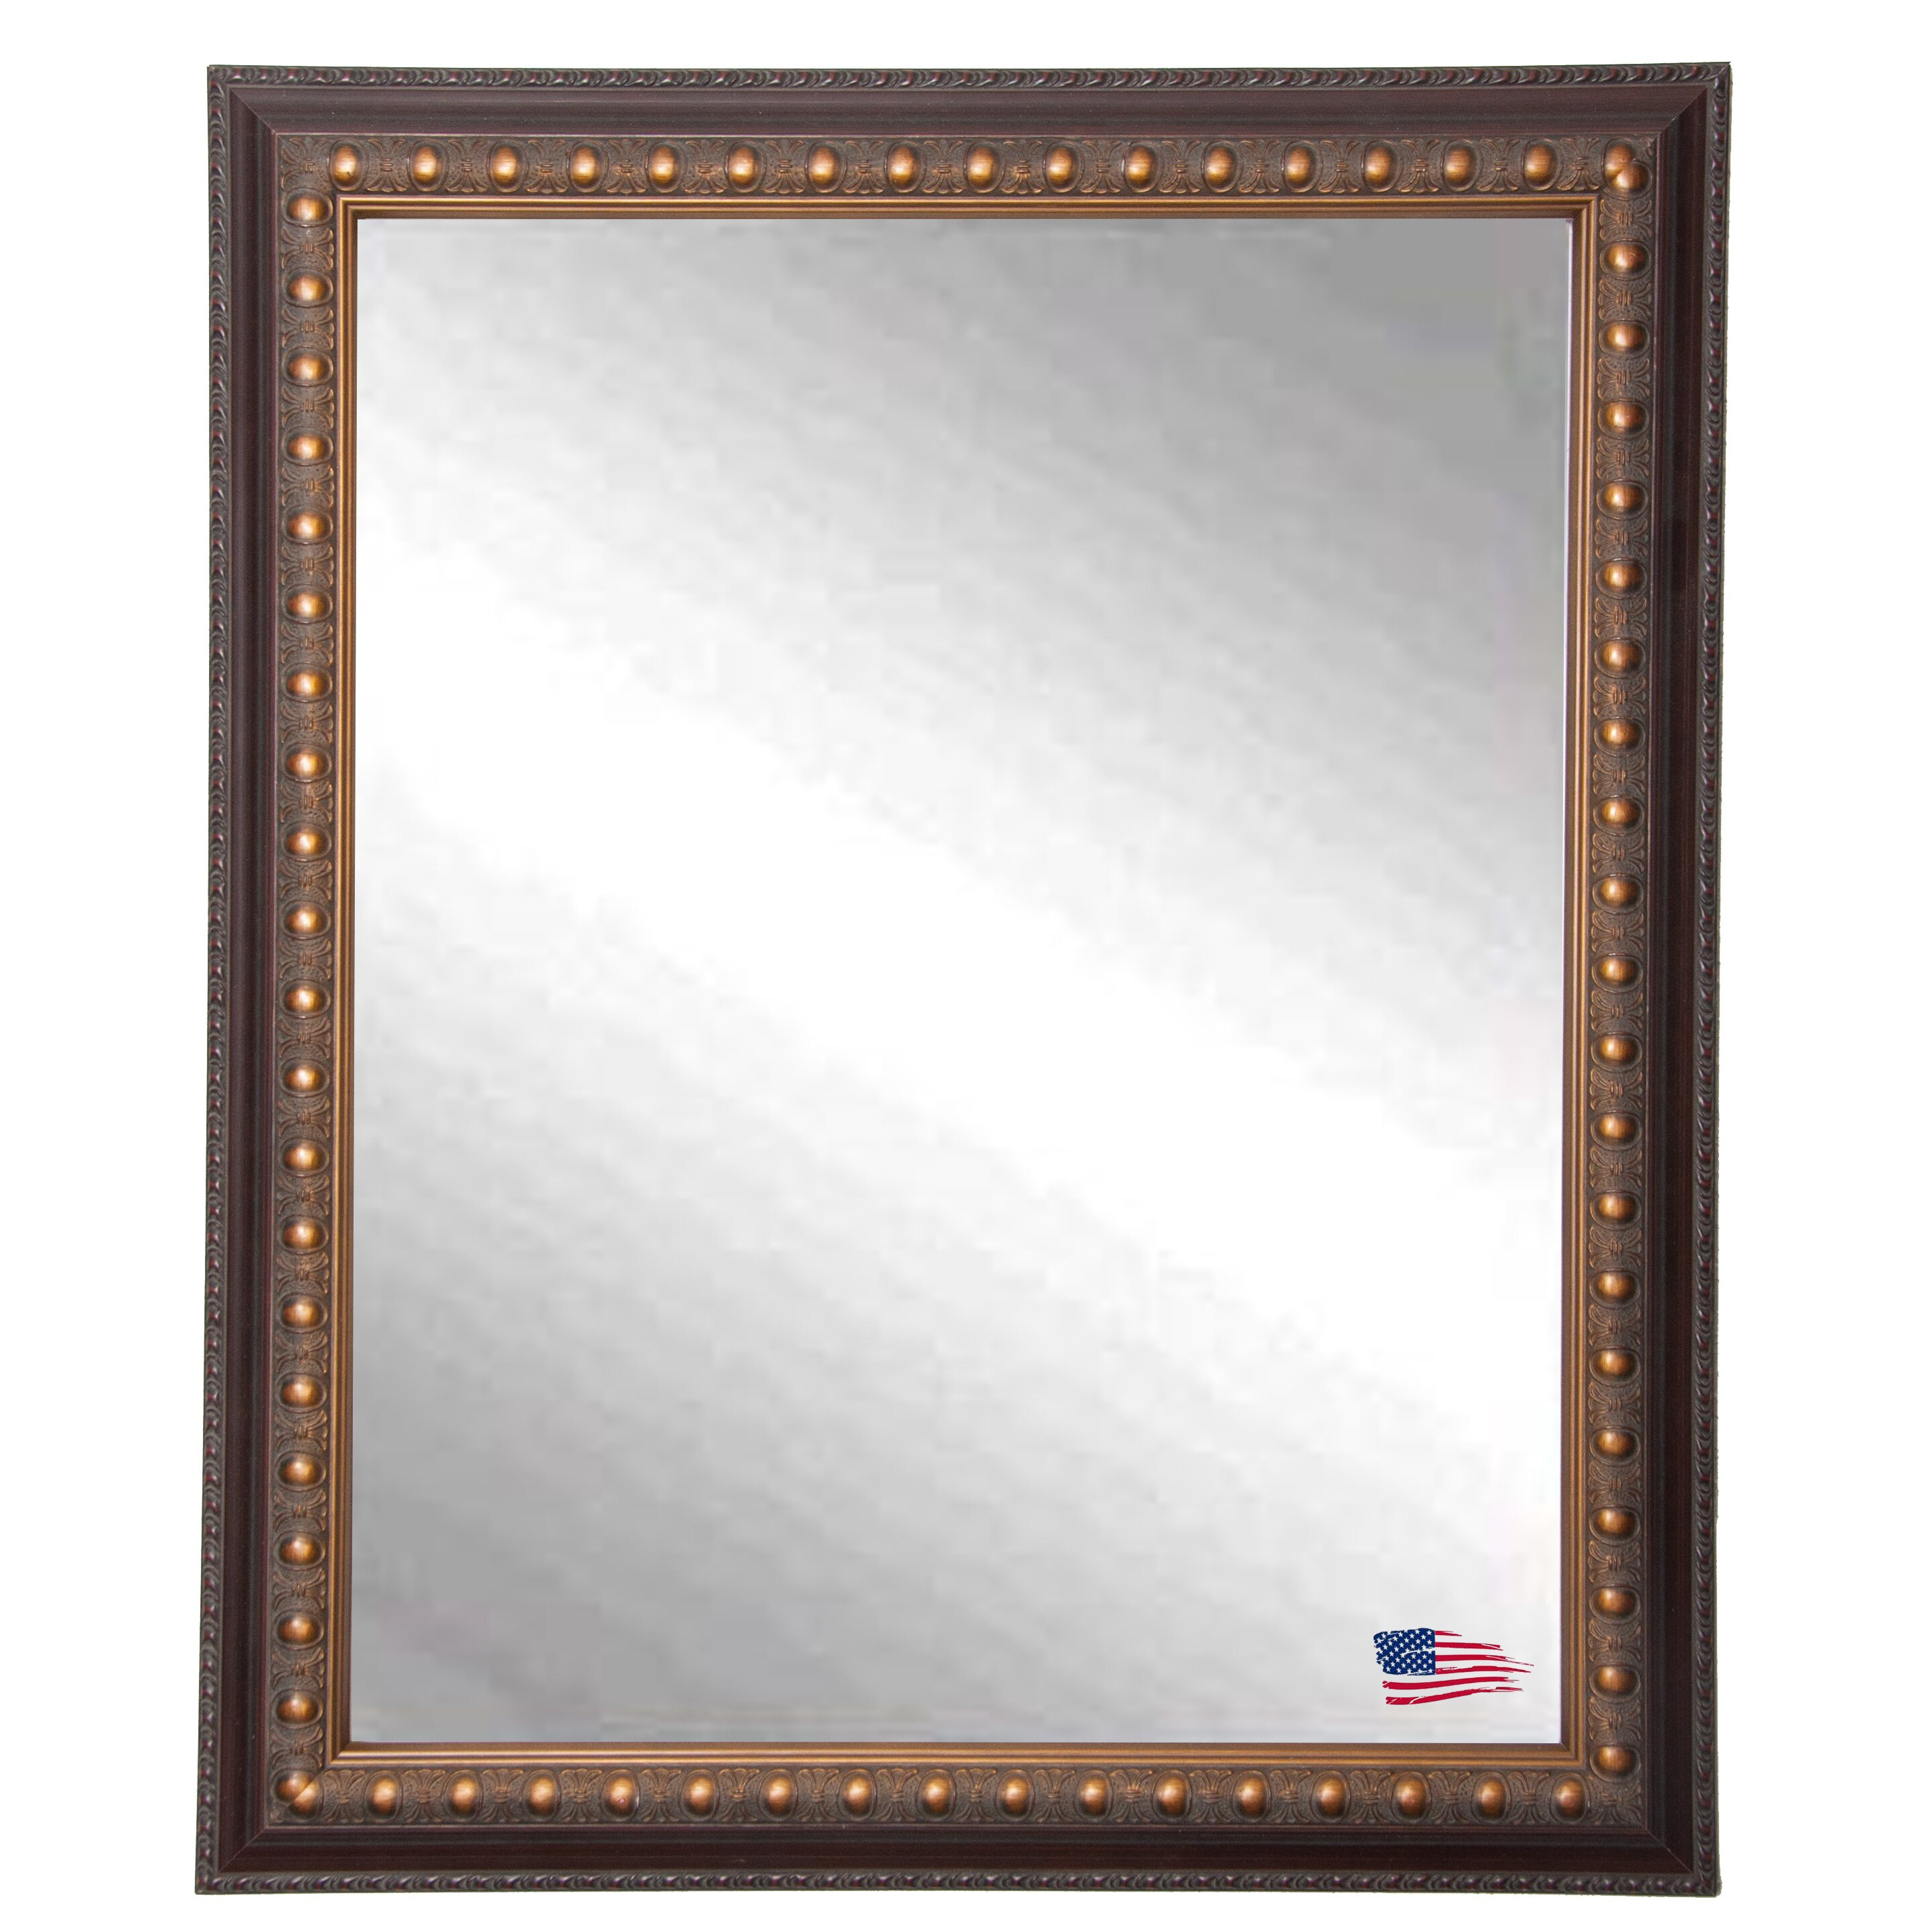 Rayne mirrors ava classic wall mirror reviews wayfair for Classic mirror